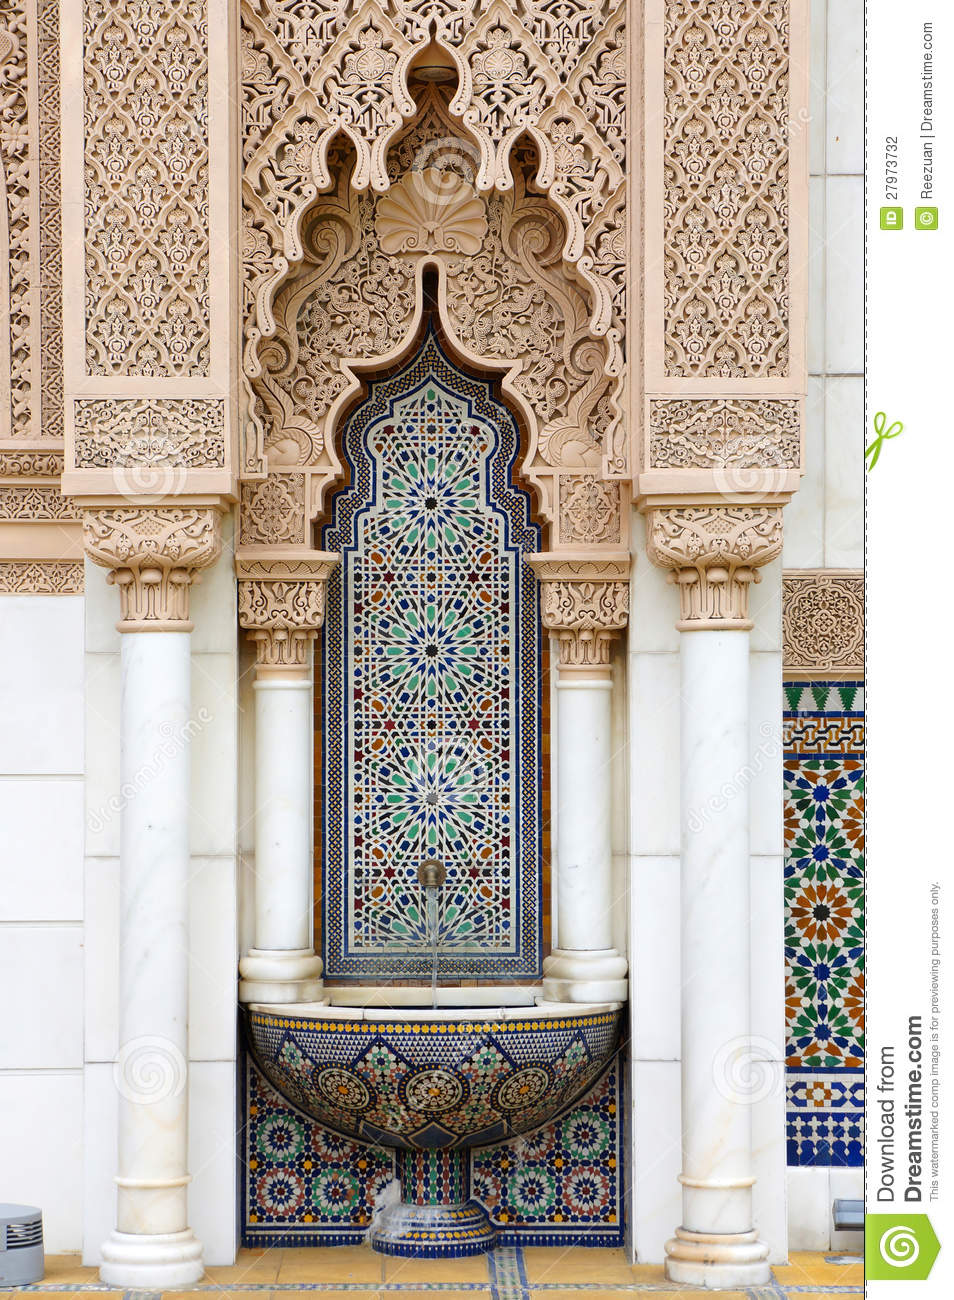 Moroccan architecture stock photo Image of countryside